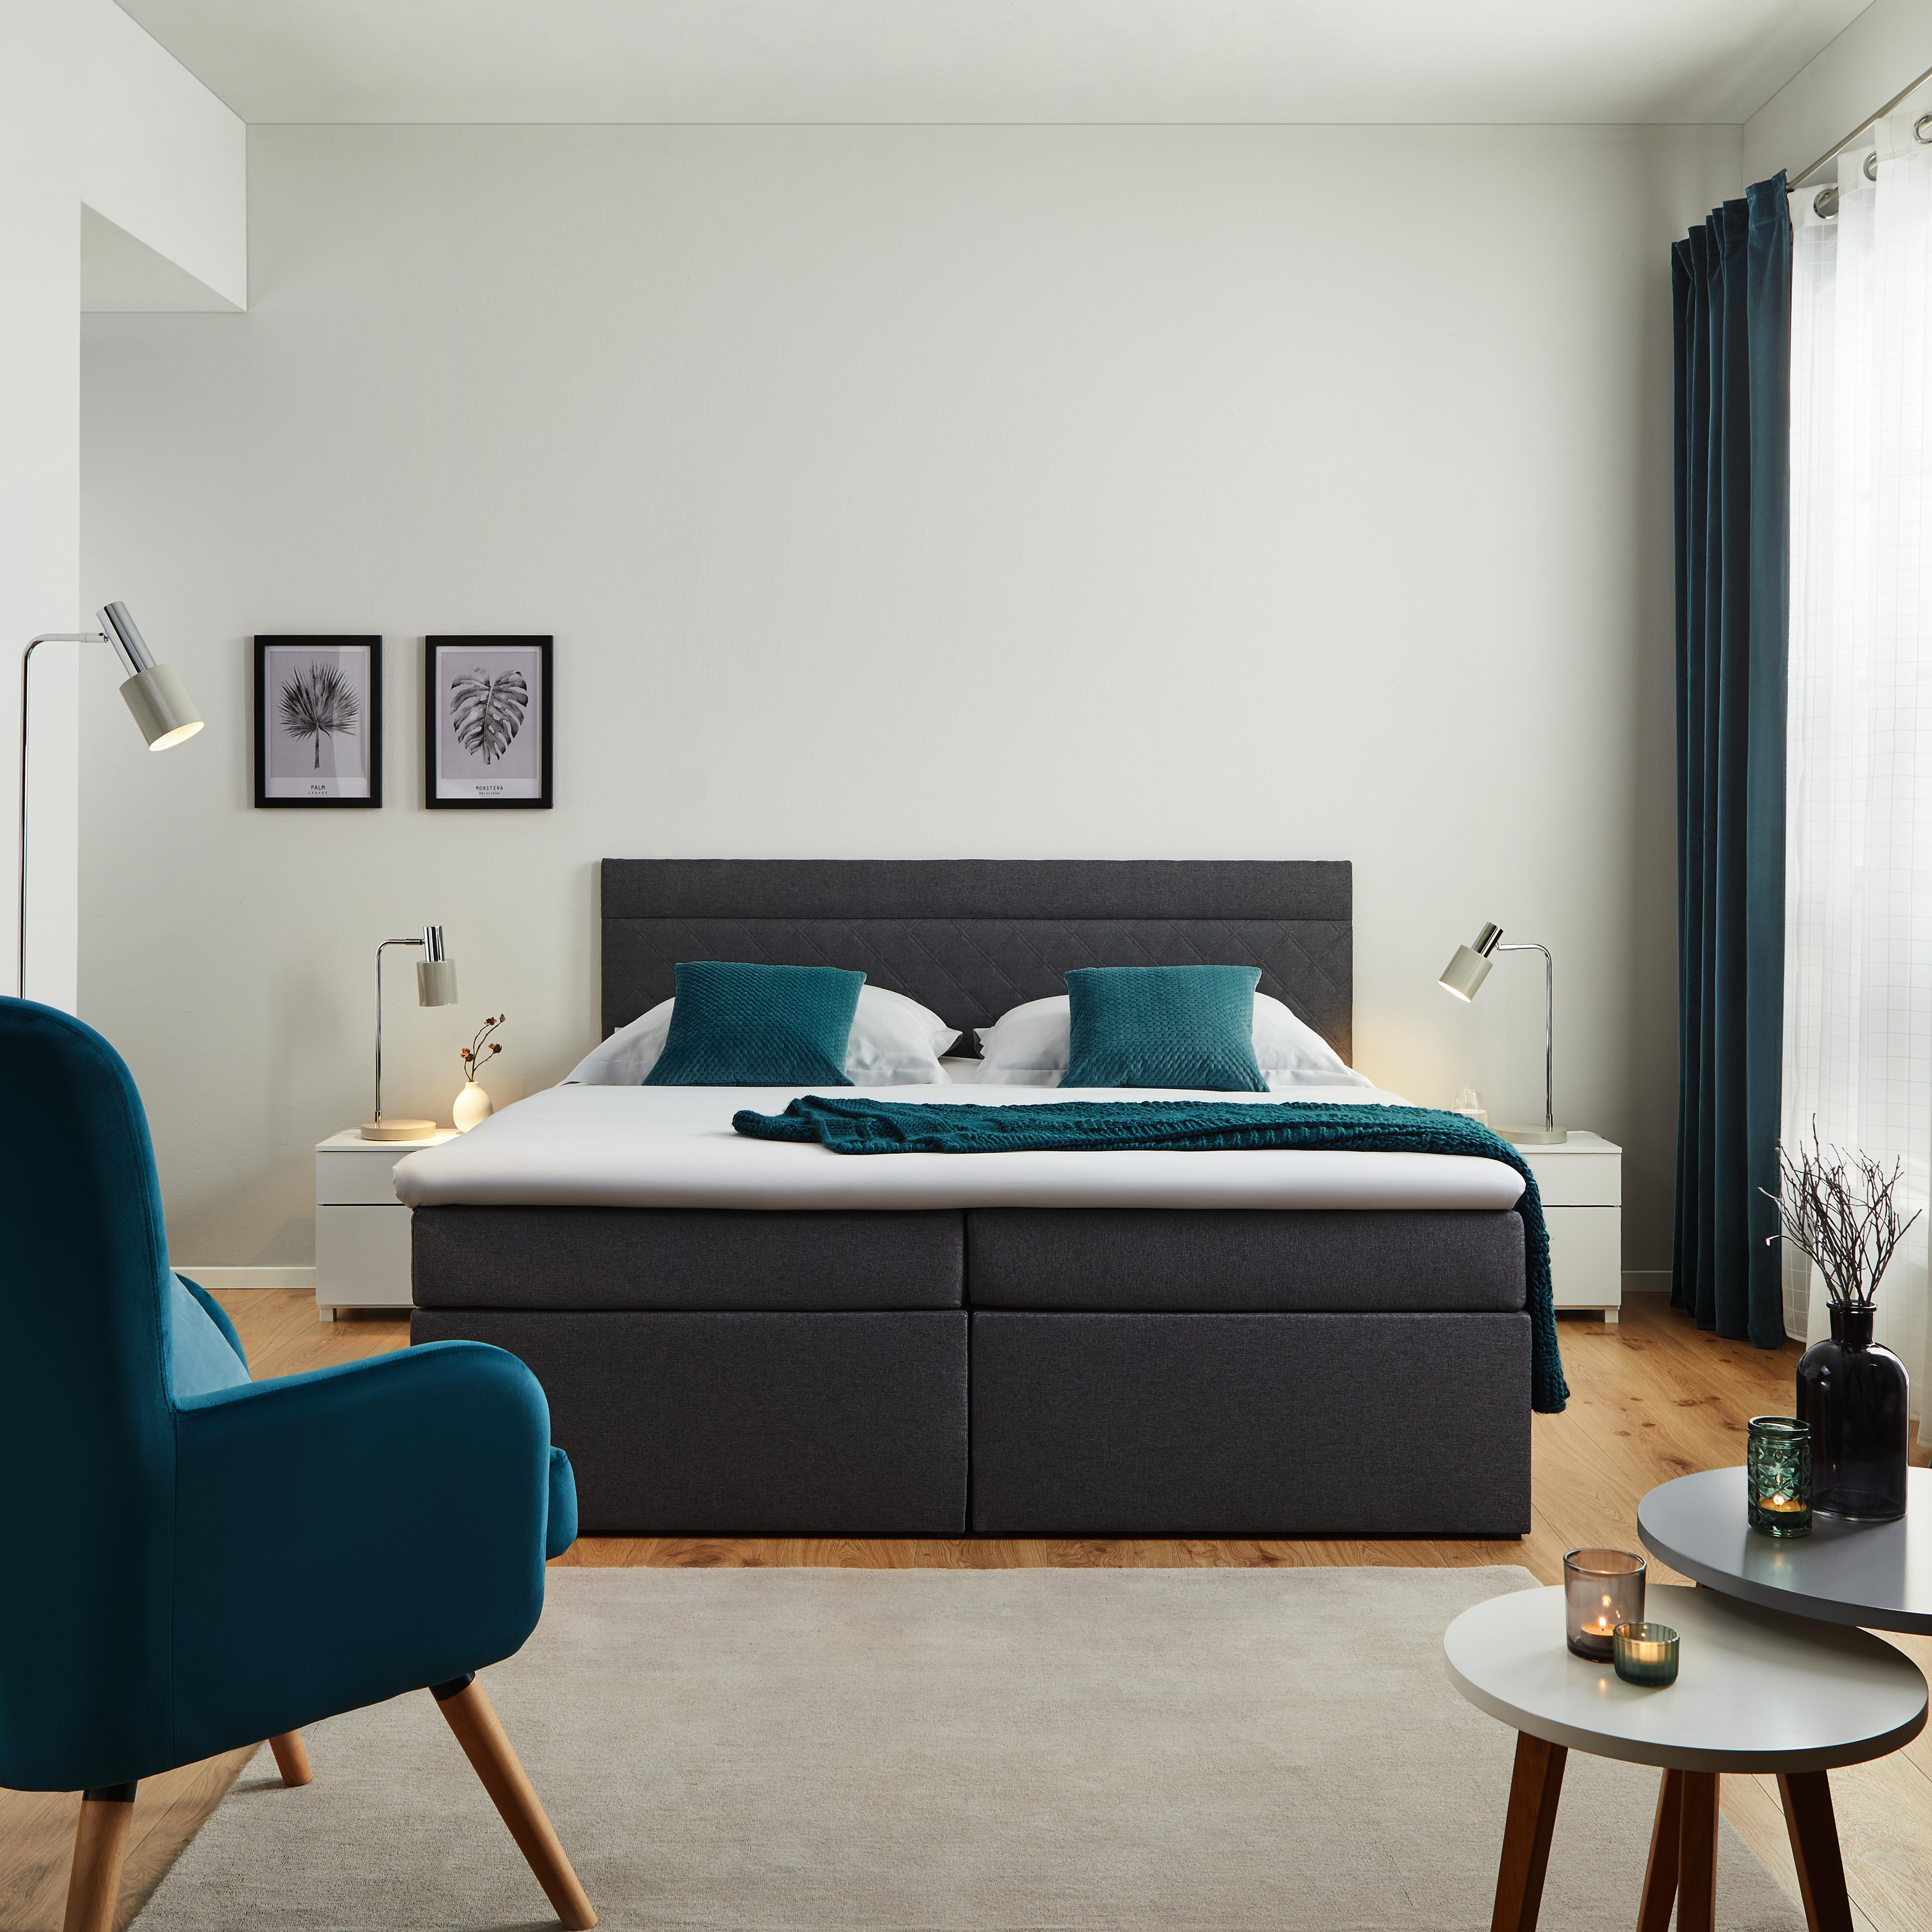 komplett schlafzimmer m max elegante schlafzimmer tapeten. Black Bedroom Furniture Sets. Home Design Ideas